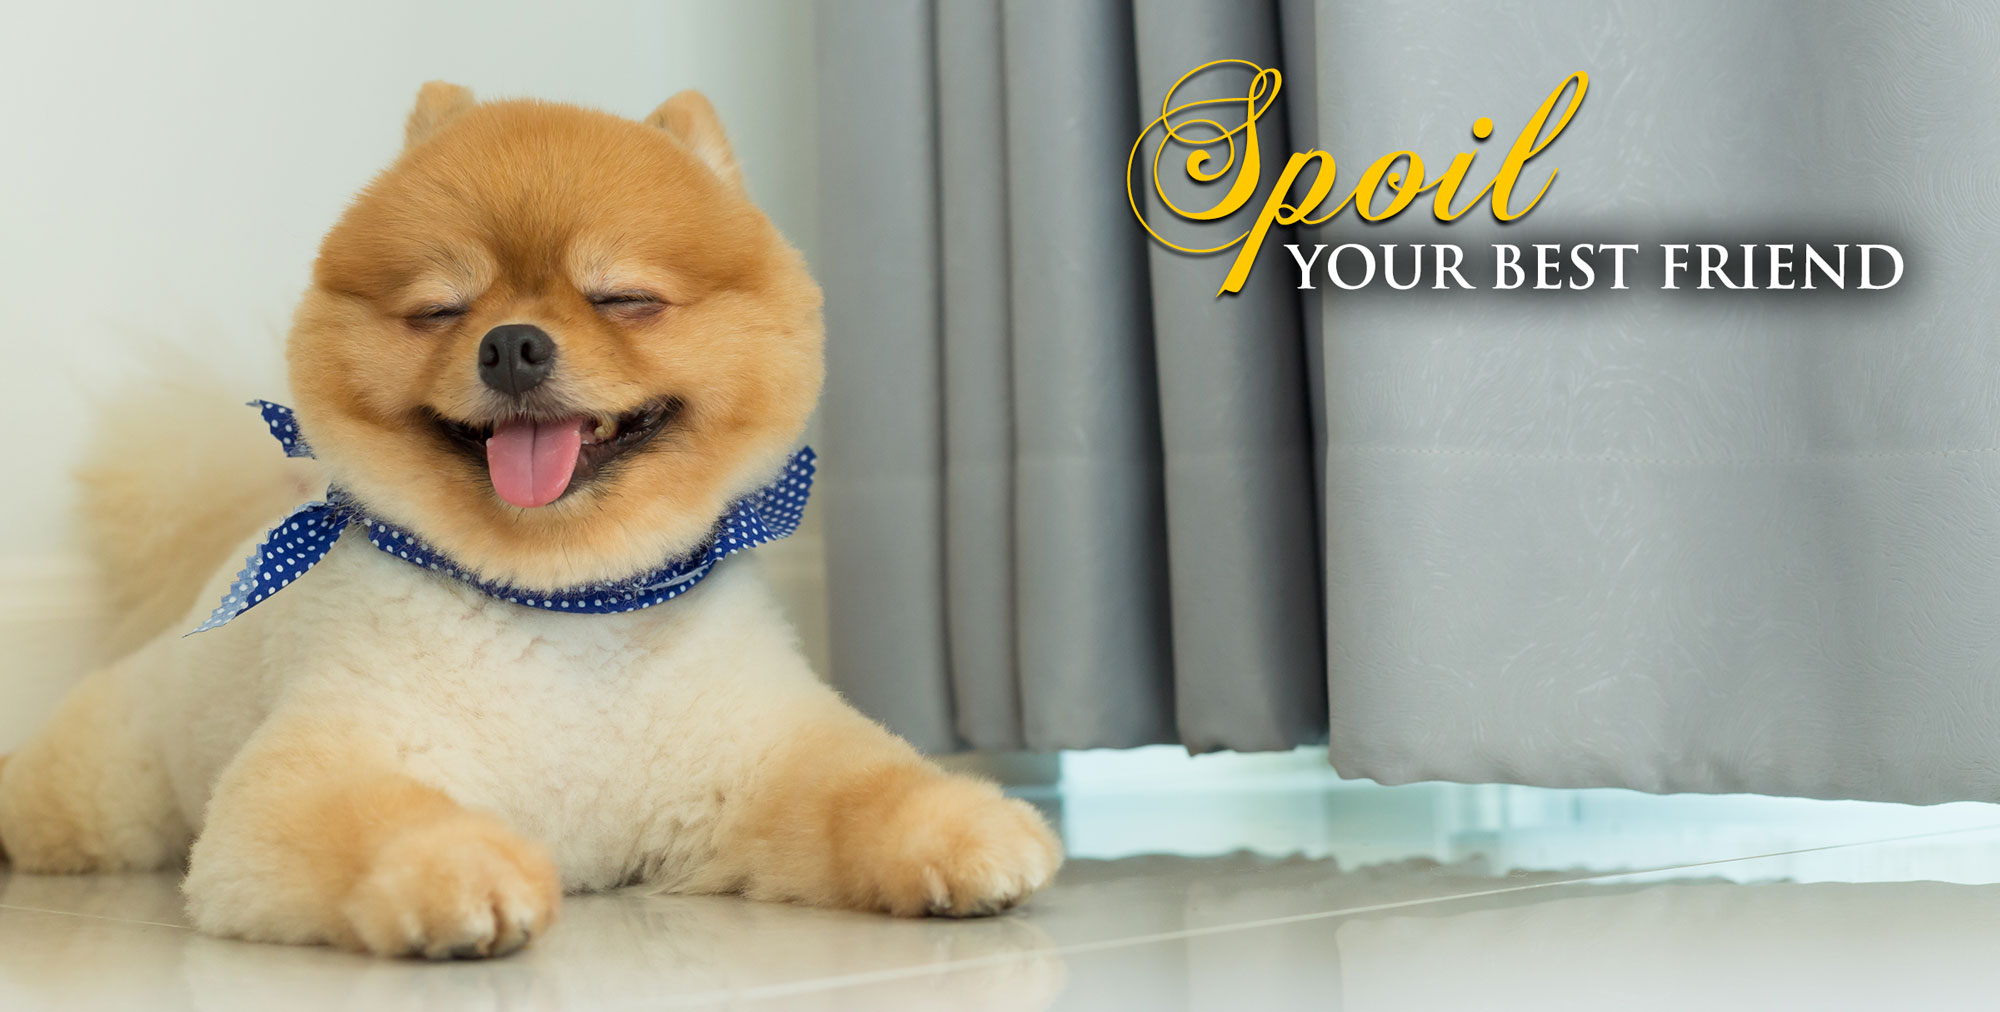 Dog Groomers Mornington | Dog Grooming Mornington | Dashing Designer Dogs Mornington | Dog grooming | Doggy Day Care | Dog Walking | Dog Groomers Mornington Peninsula